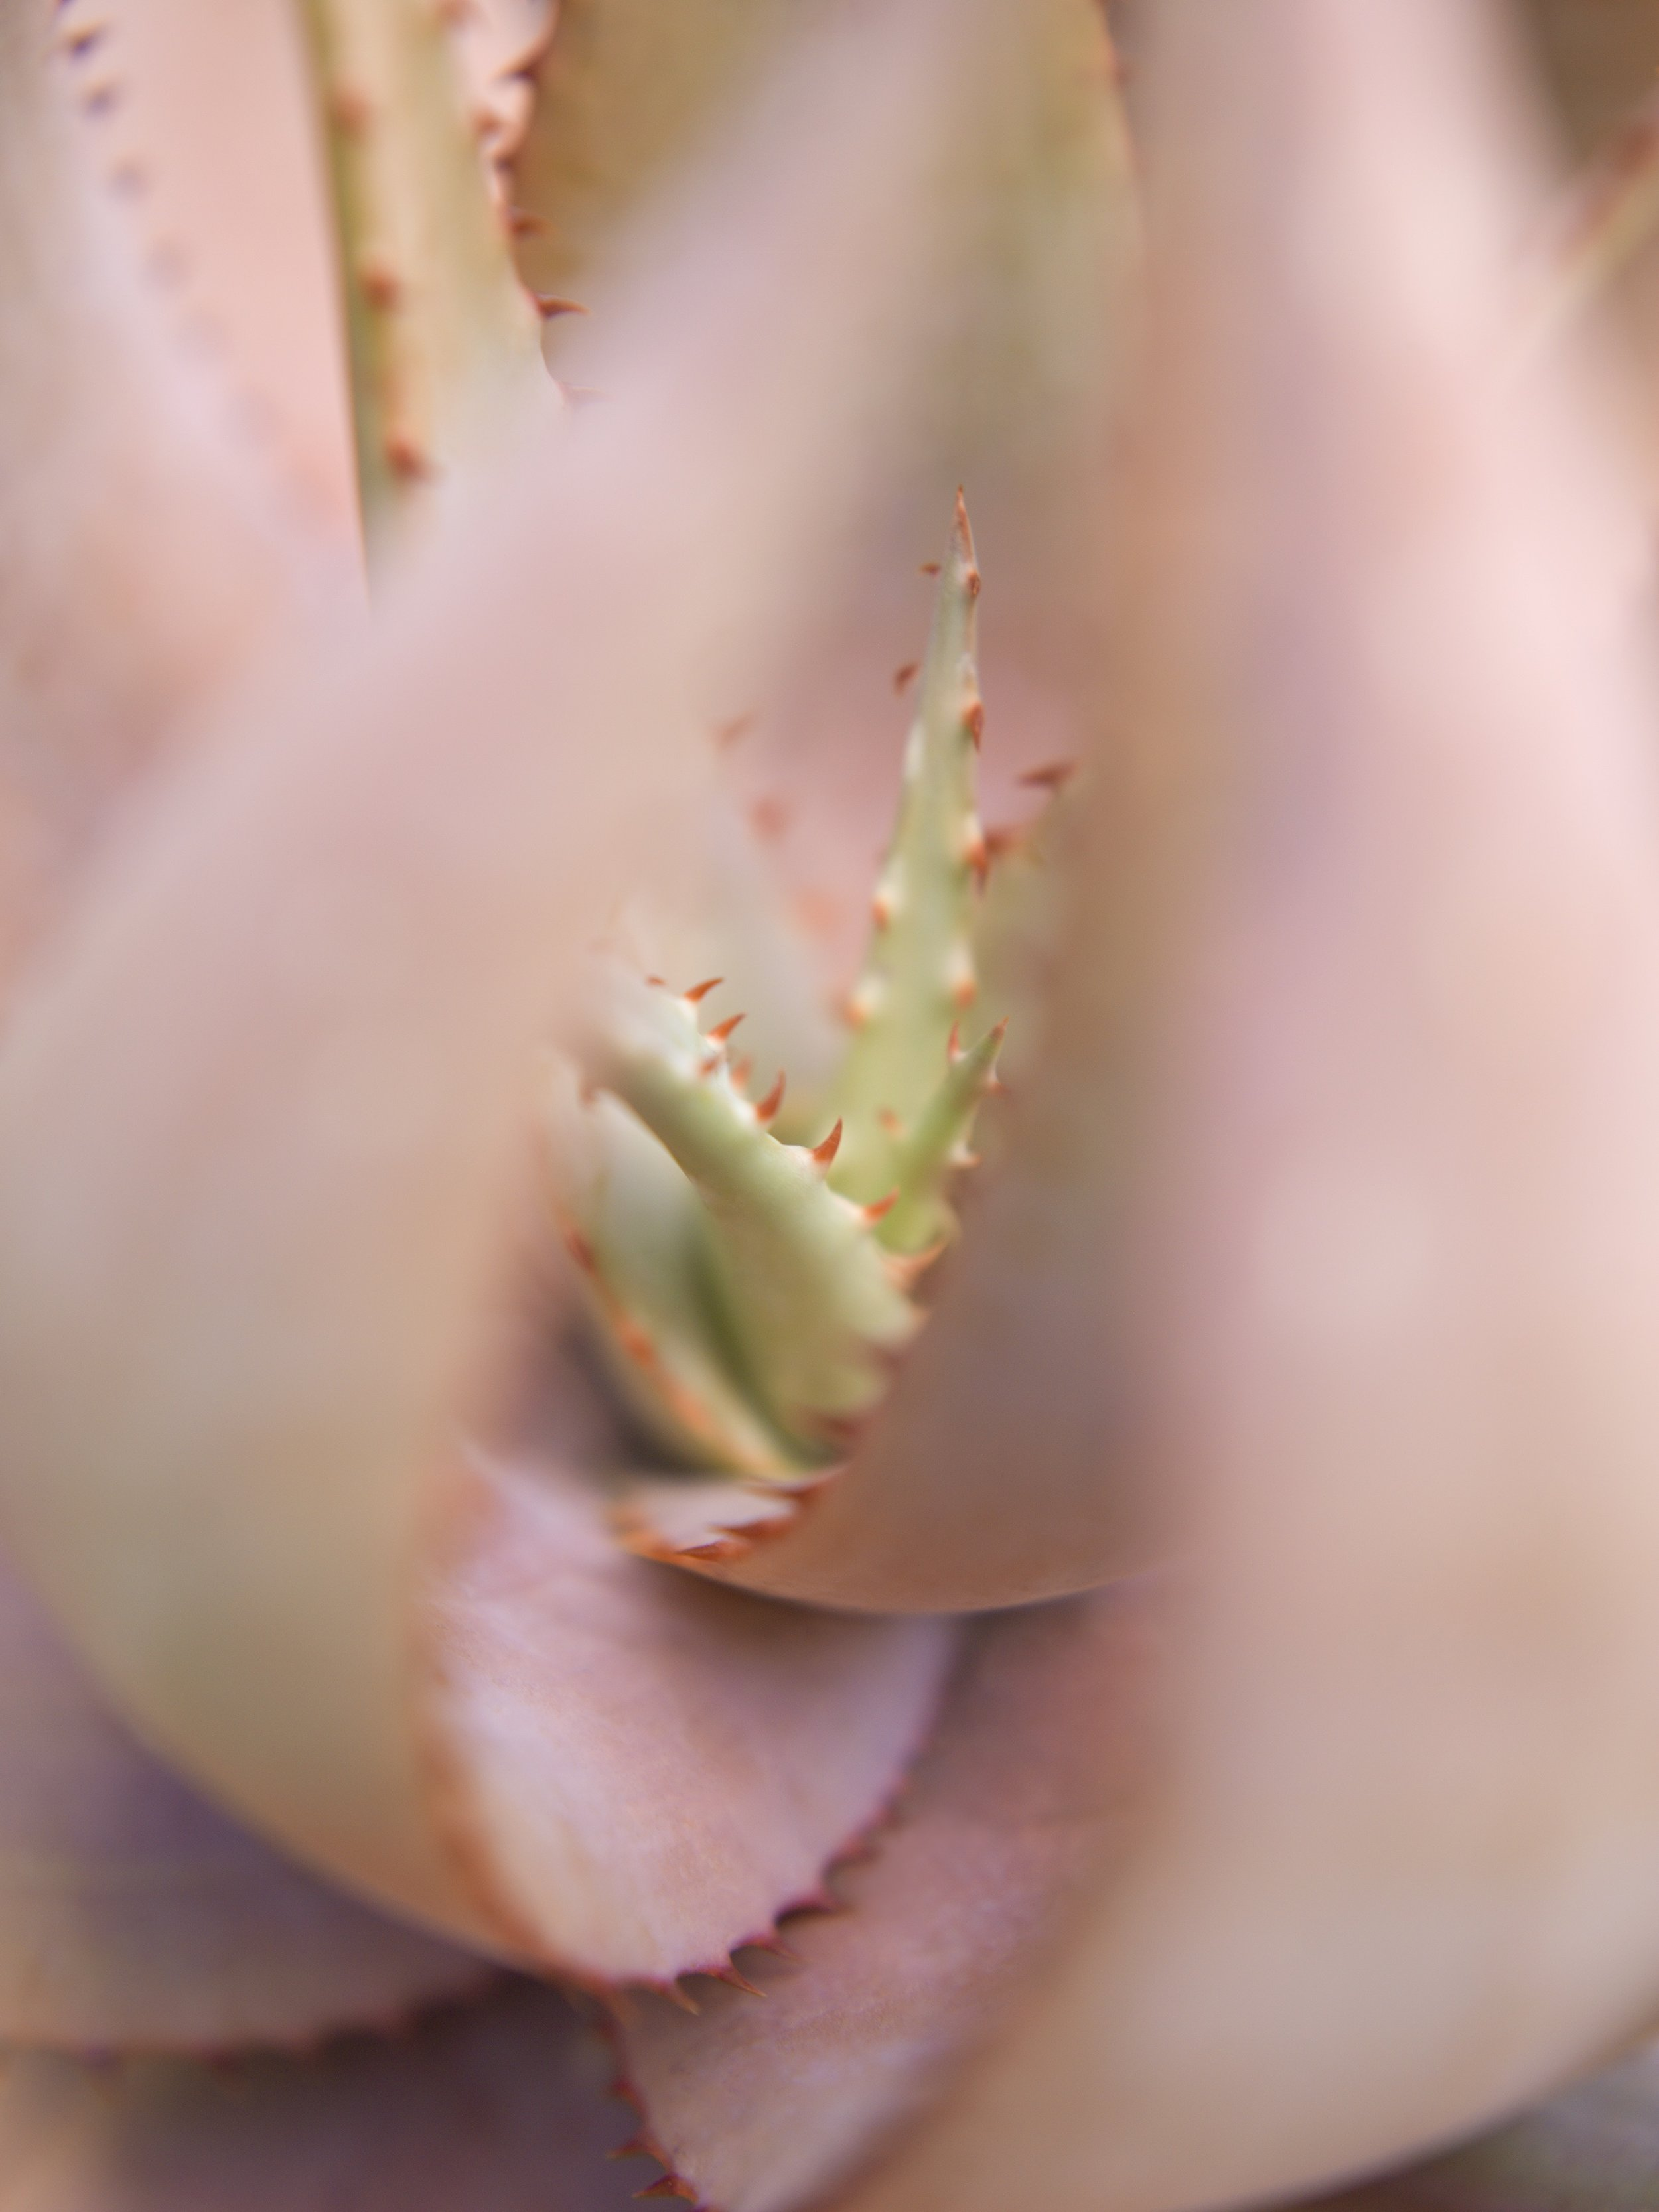 MONA KUHN  Succulents 06,  2018 Chromogenic metallic archival print  Available sizes:  40 x 30 inches, edition of 8 + 2AP 60 x 45 inches, edition of 5 + 1 AP